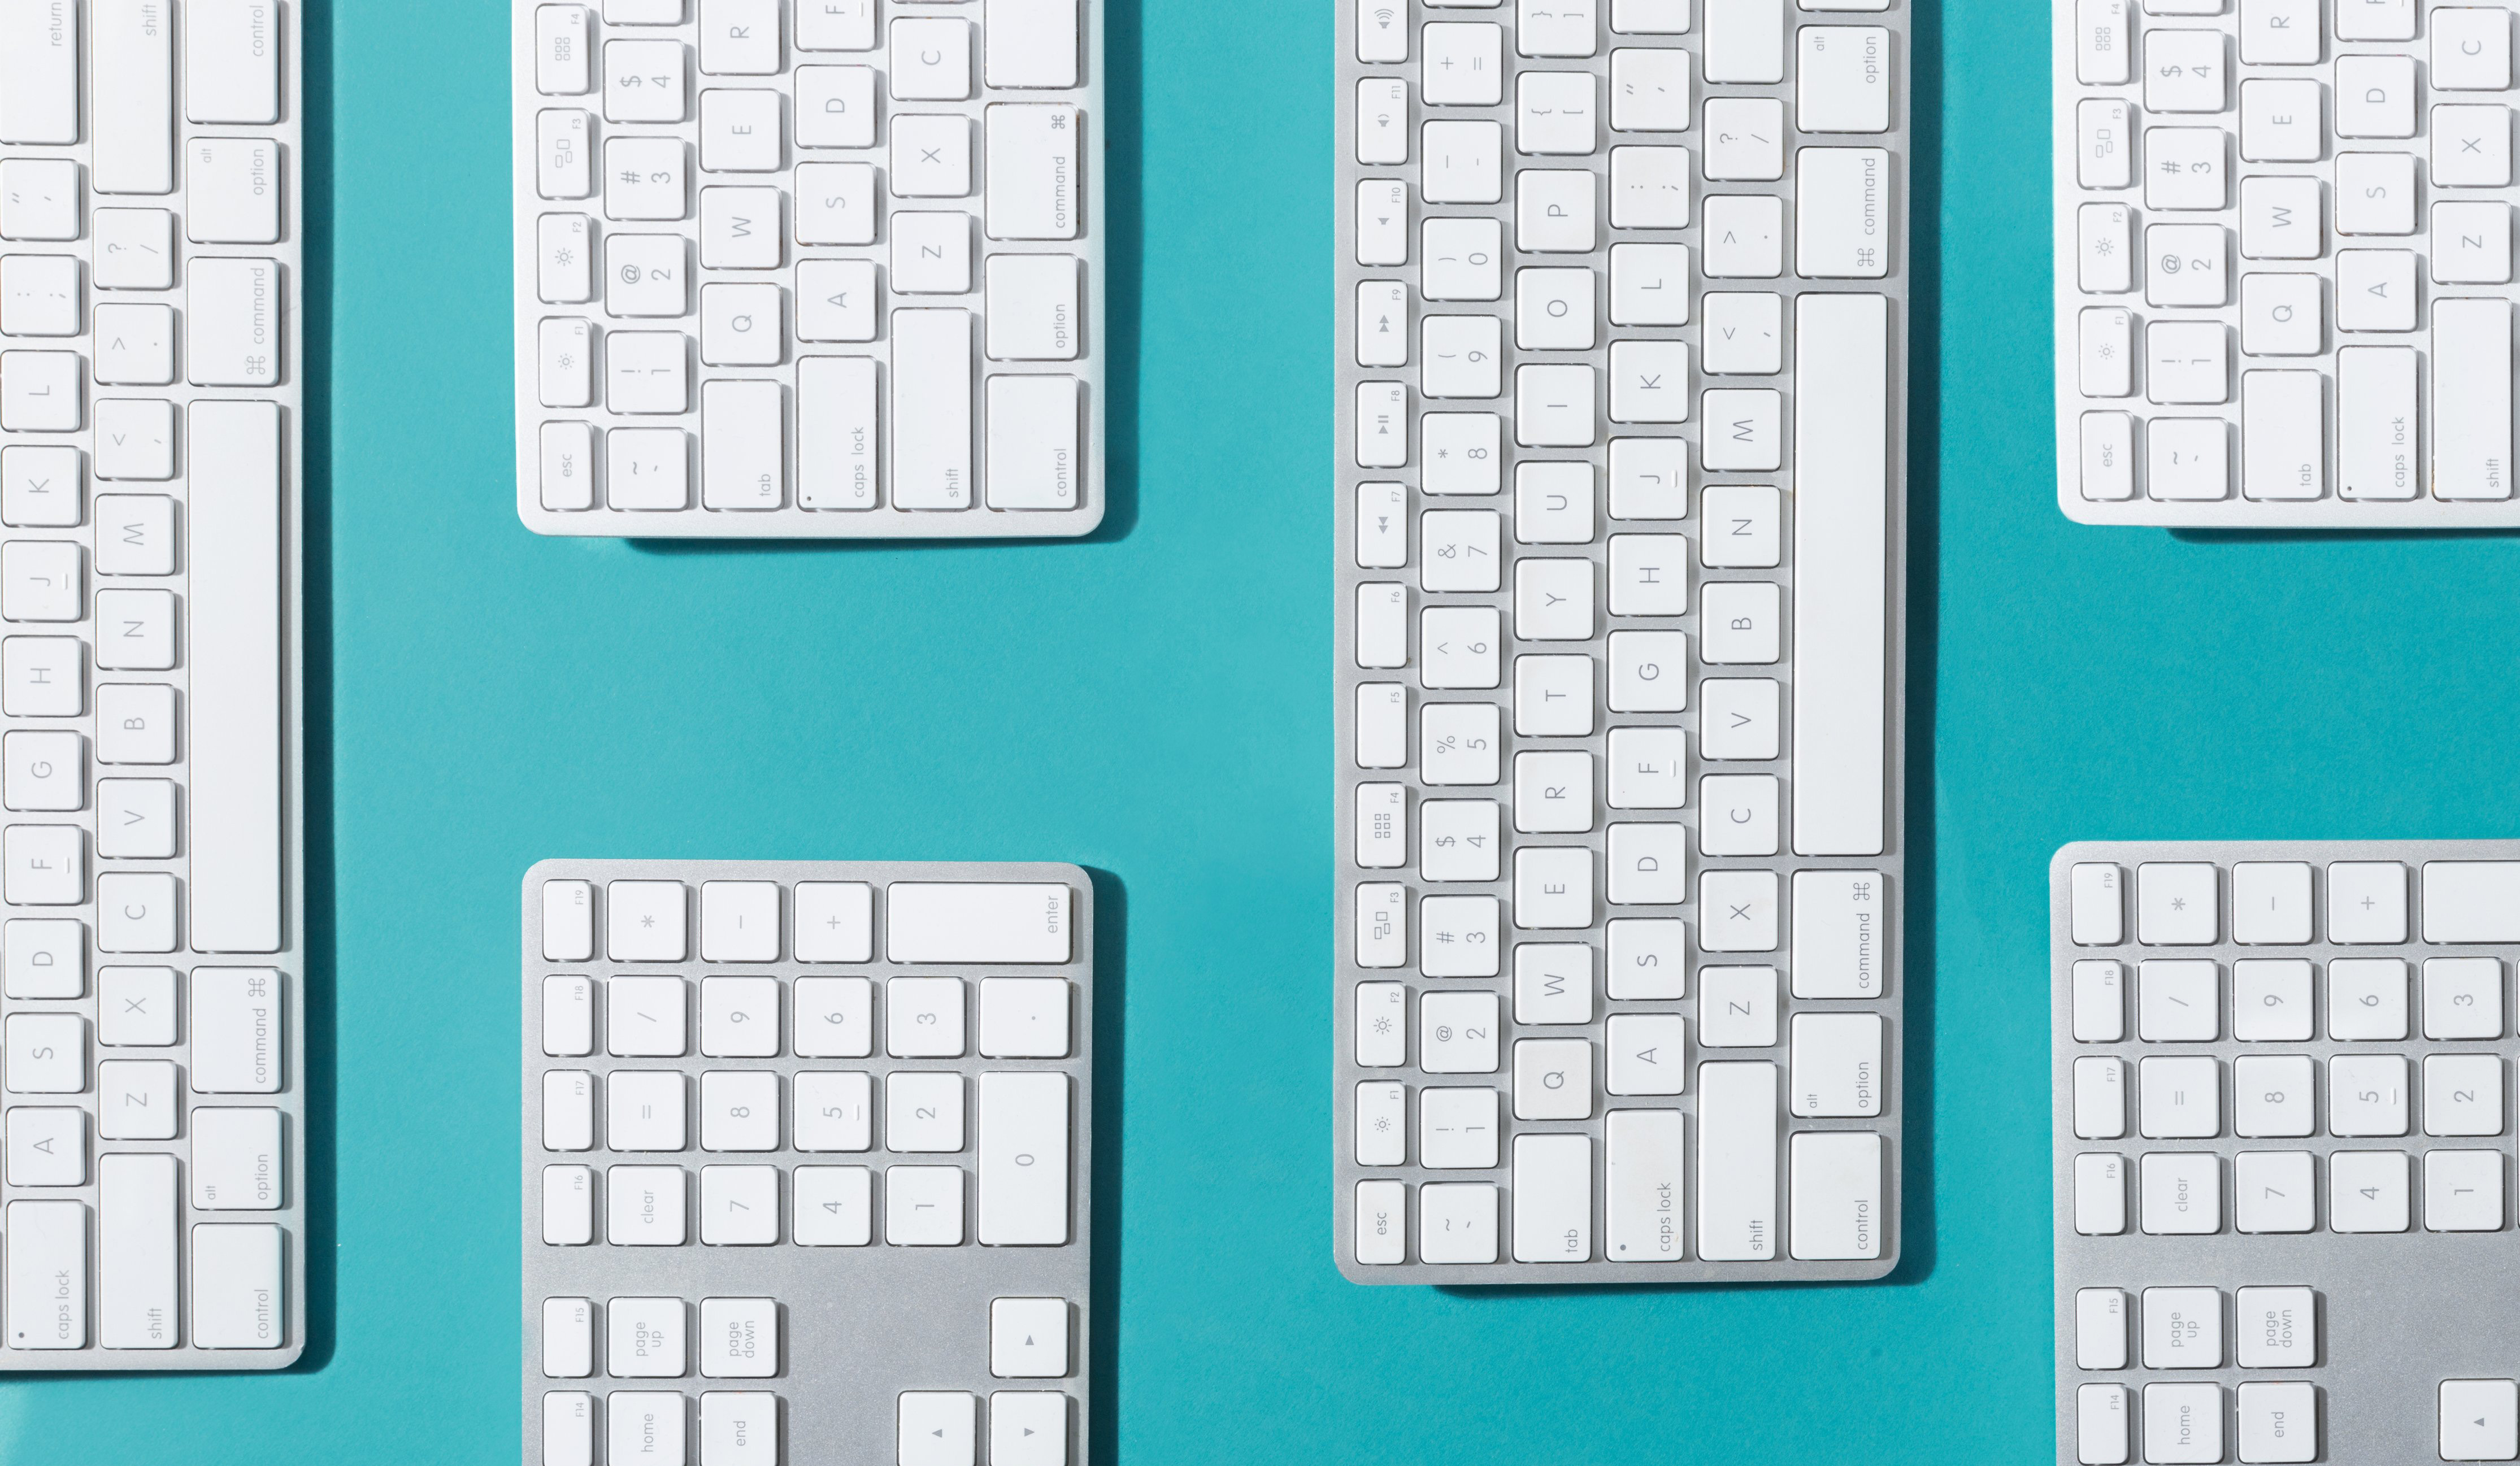 cropped_silver-and-white-keyboards-flat-lay